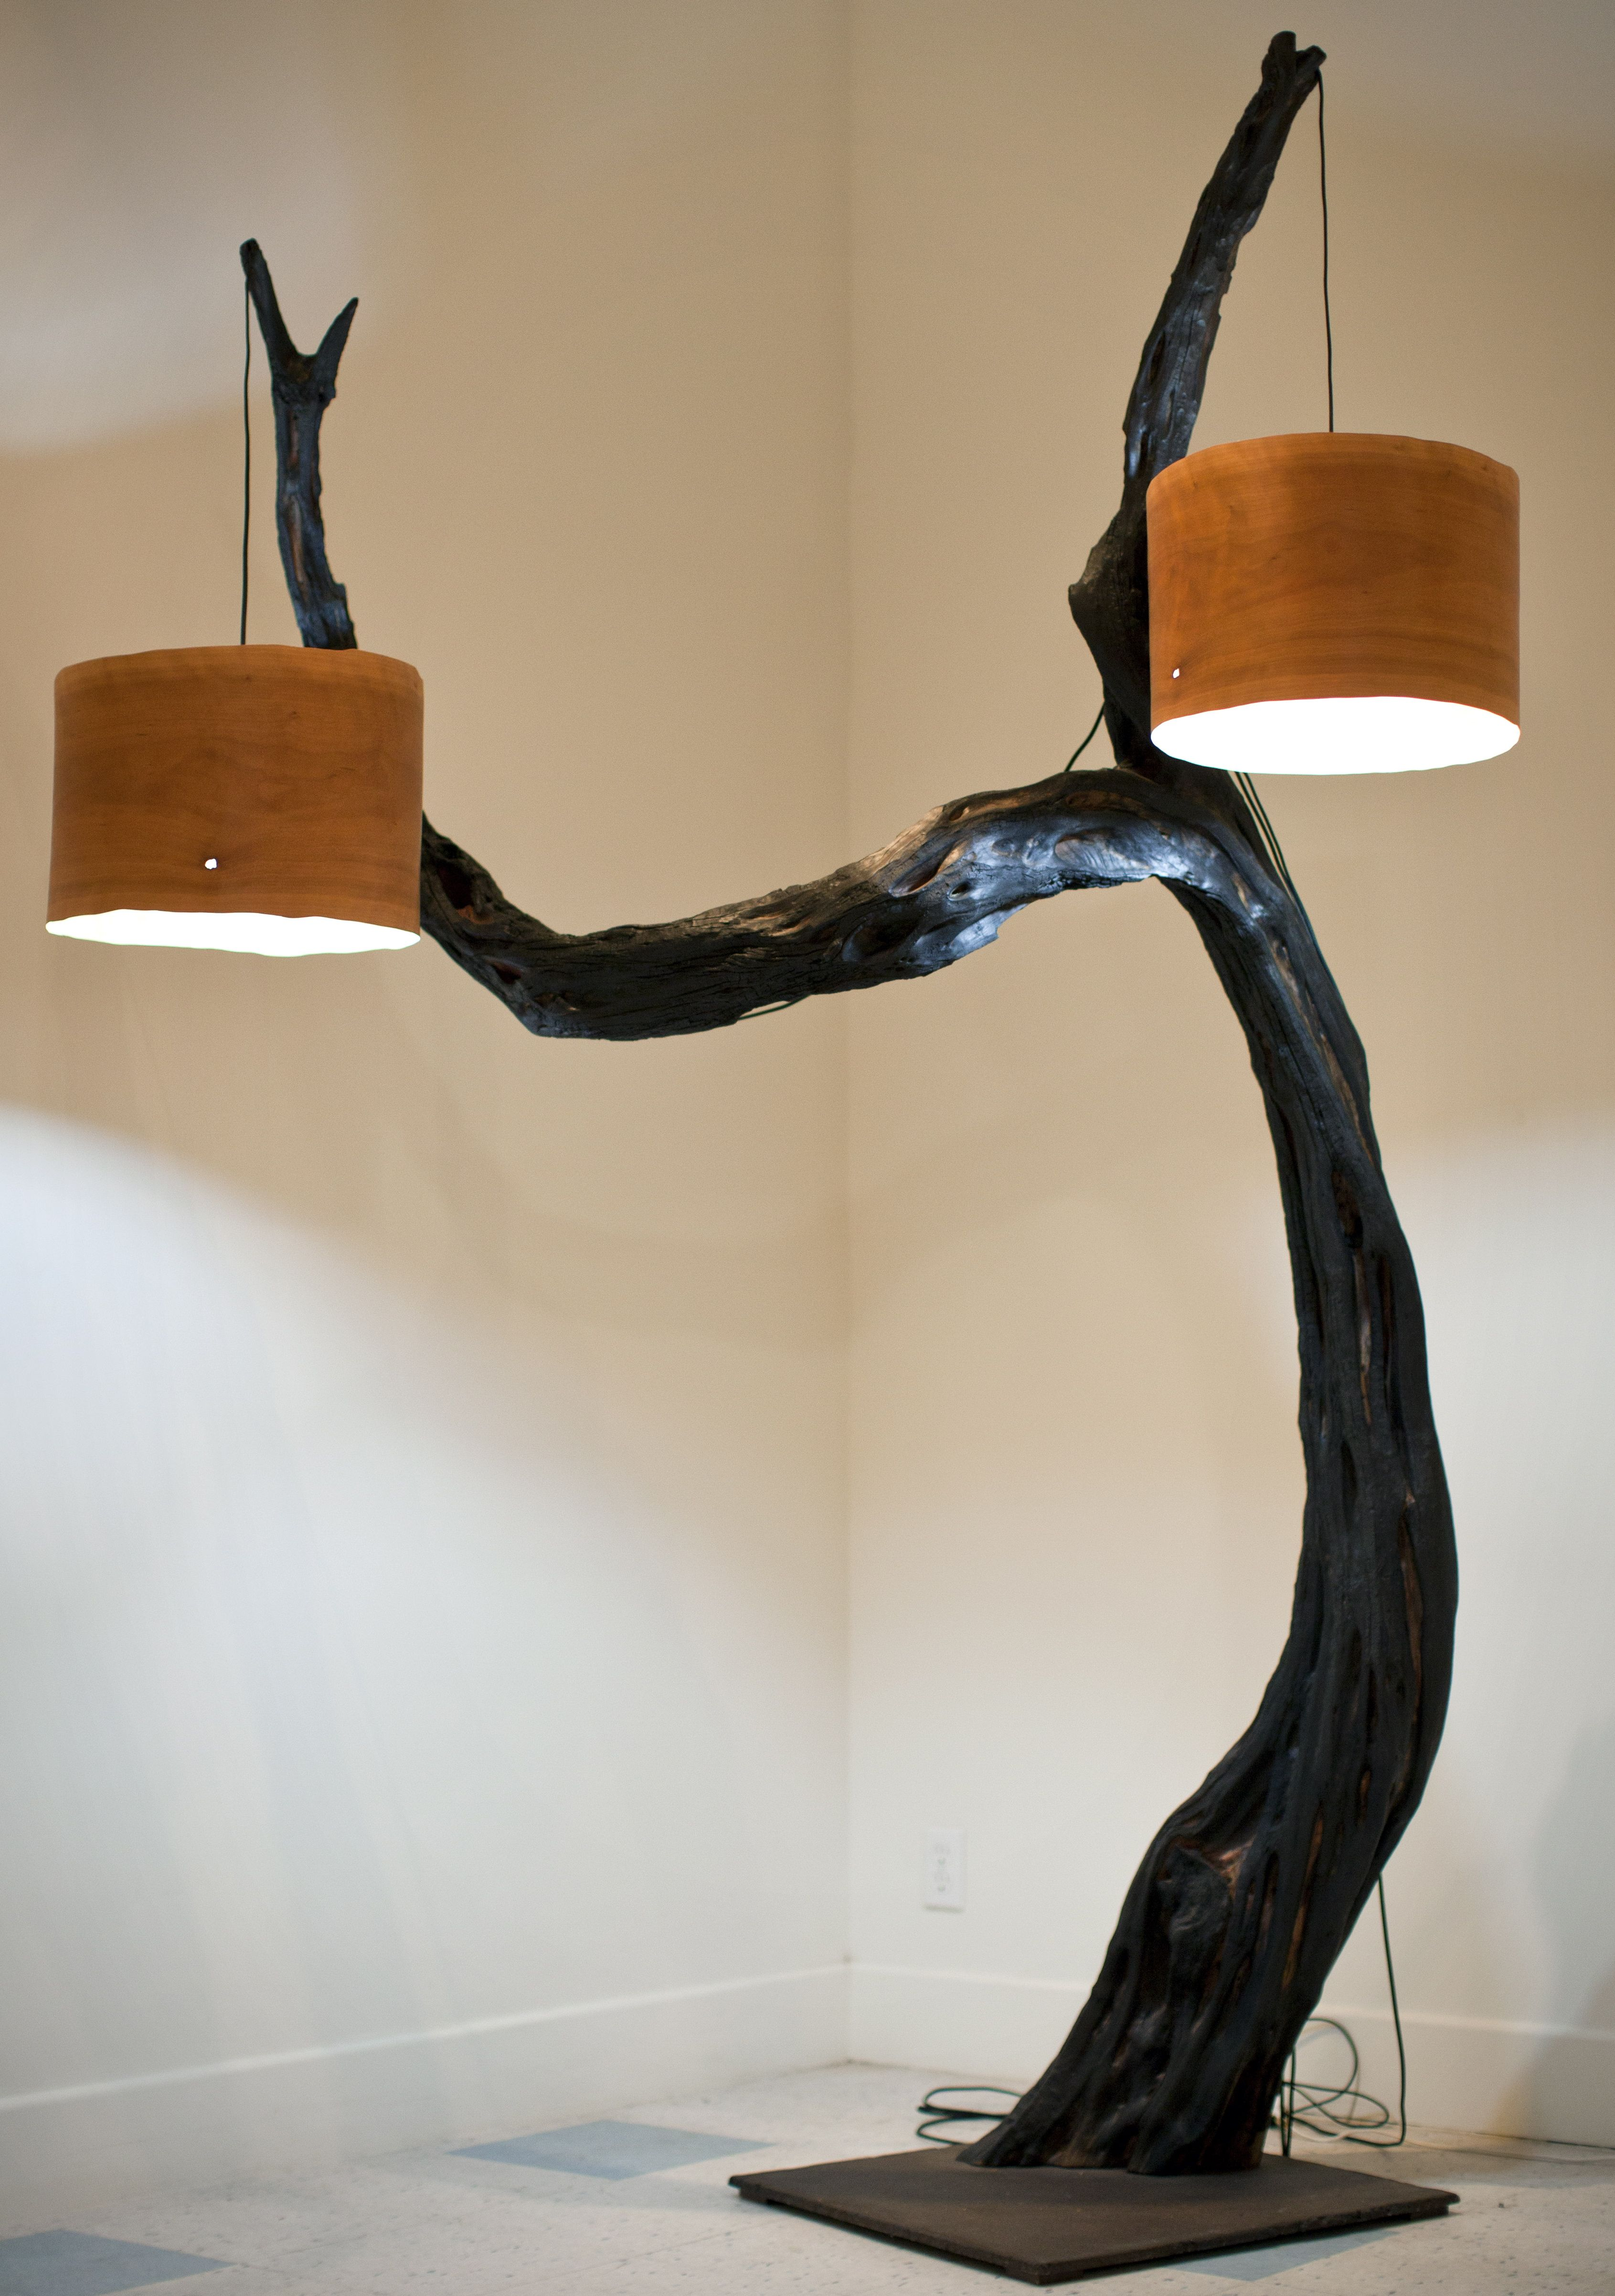 Stunning Hanging Pendant Lamps For Patio Furniture From Recycled Materials  With White Wall Paneling Decoration Ideas